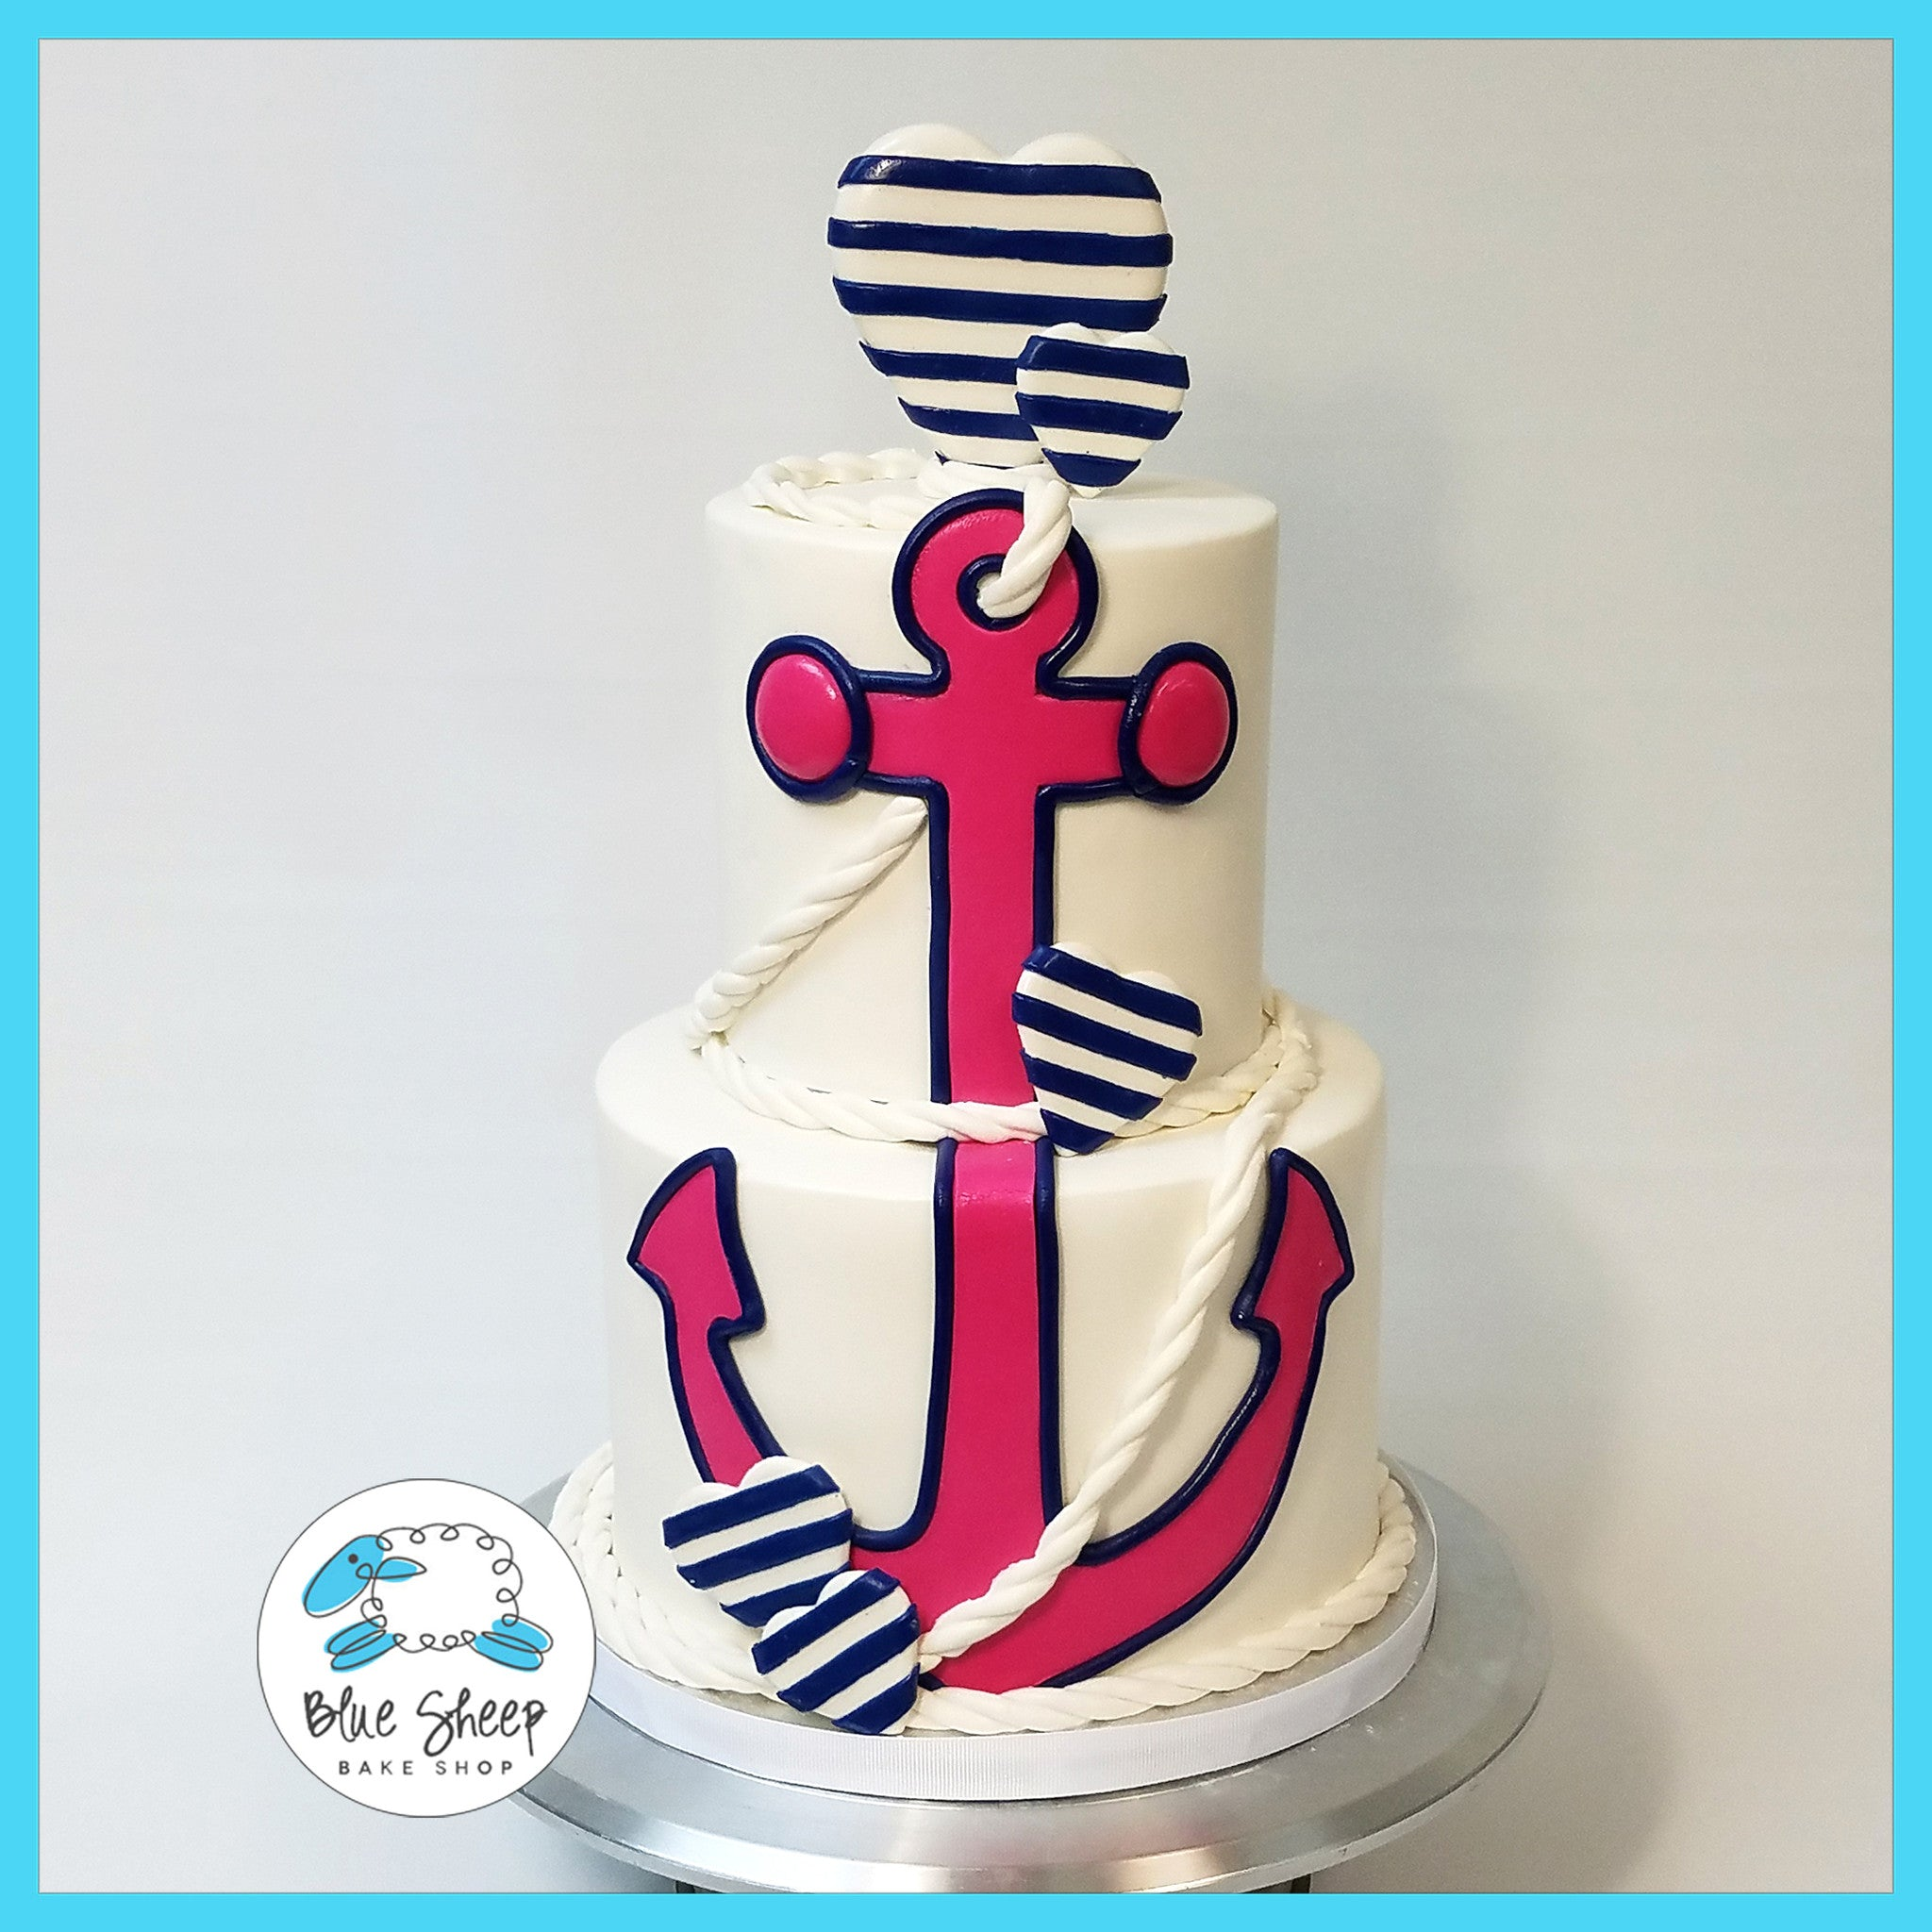 Strange Gender Reveal Nautical Themed Cake Nj Blue Sheep Bake Shop Personalised Birthday Cards Sponlily Jamesorg